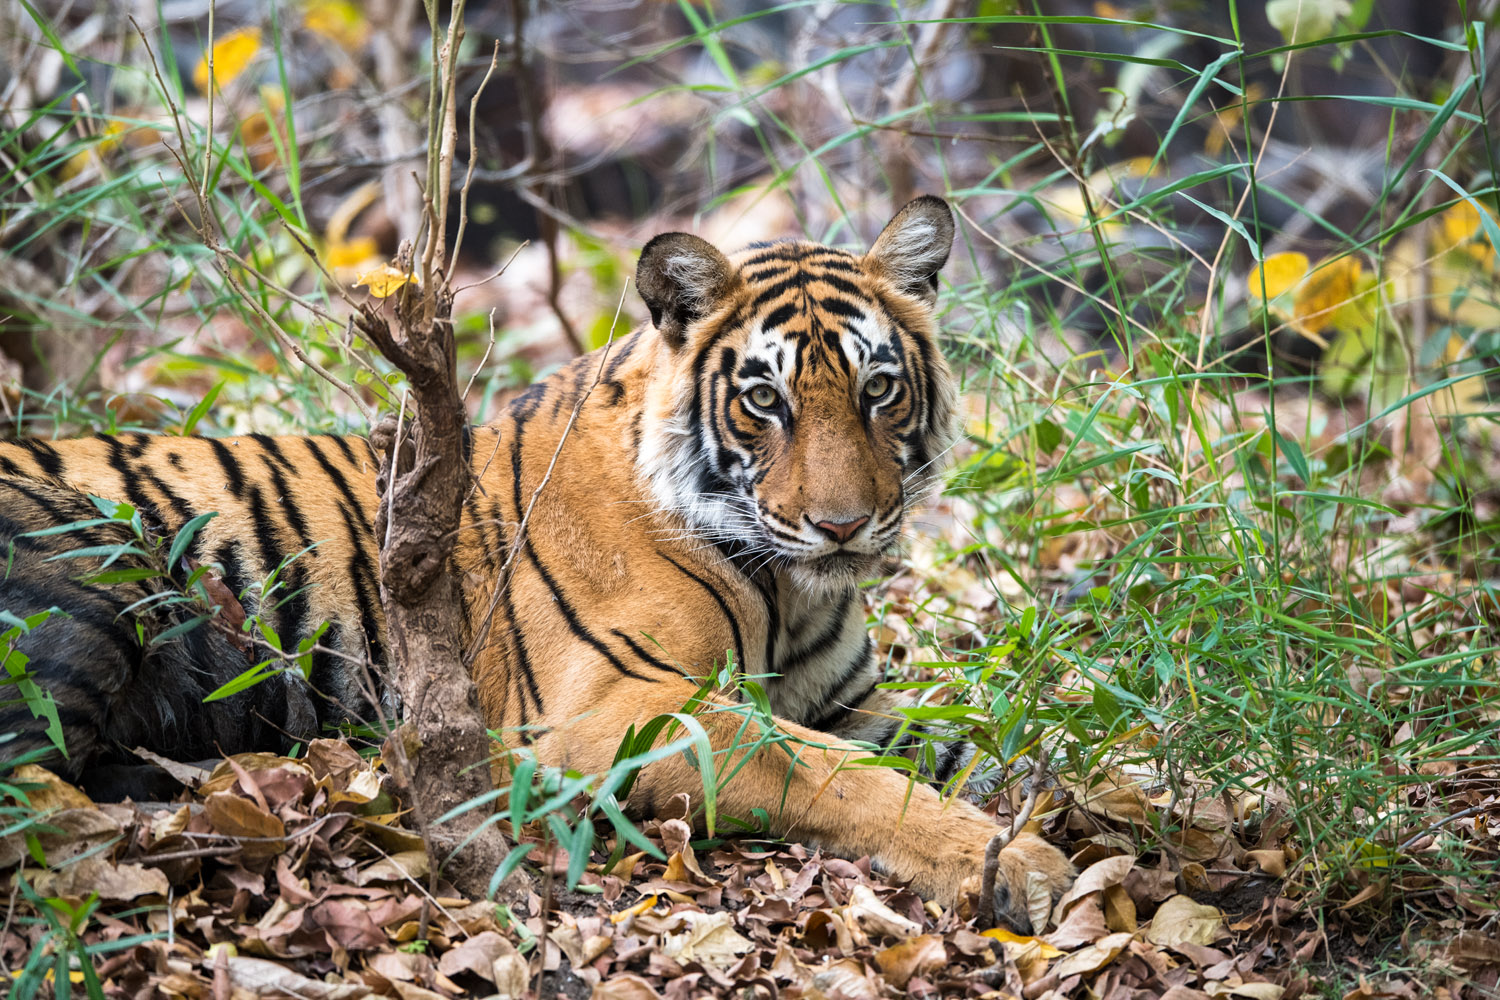 Bengal tigress resting, Ranthambhore National Park, Rajasthan, India